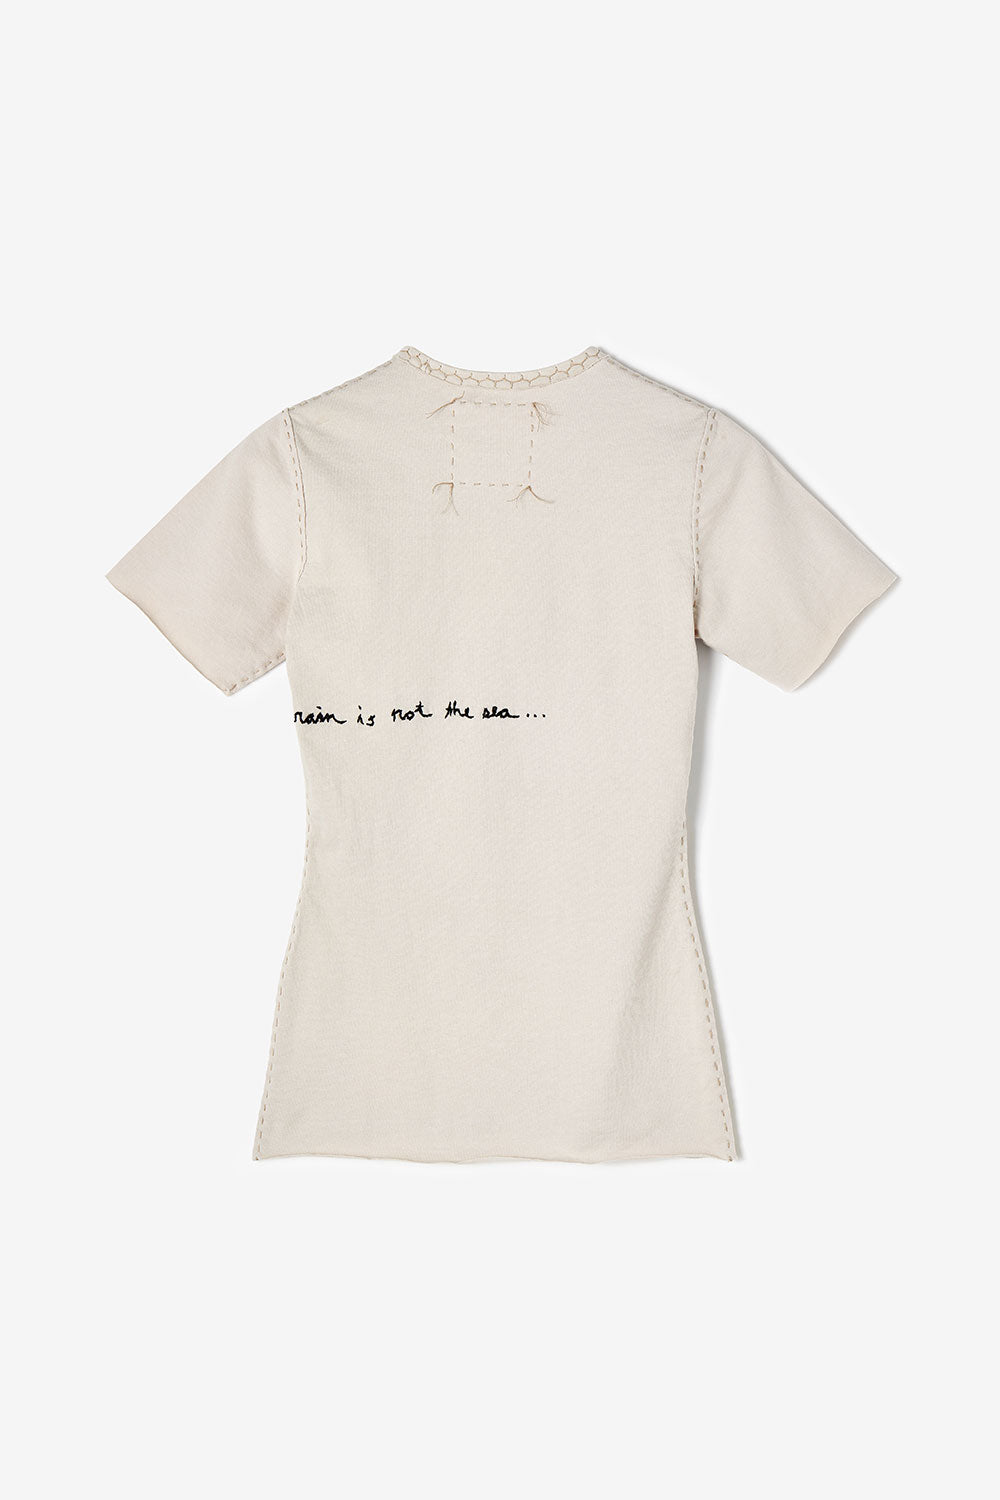 The School of Making 100% Organic Cotton Hand-Sewn DIY Top with Embroidery